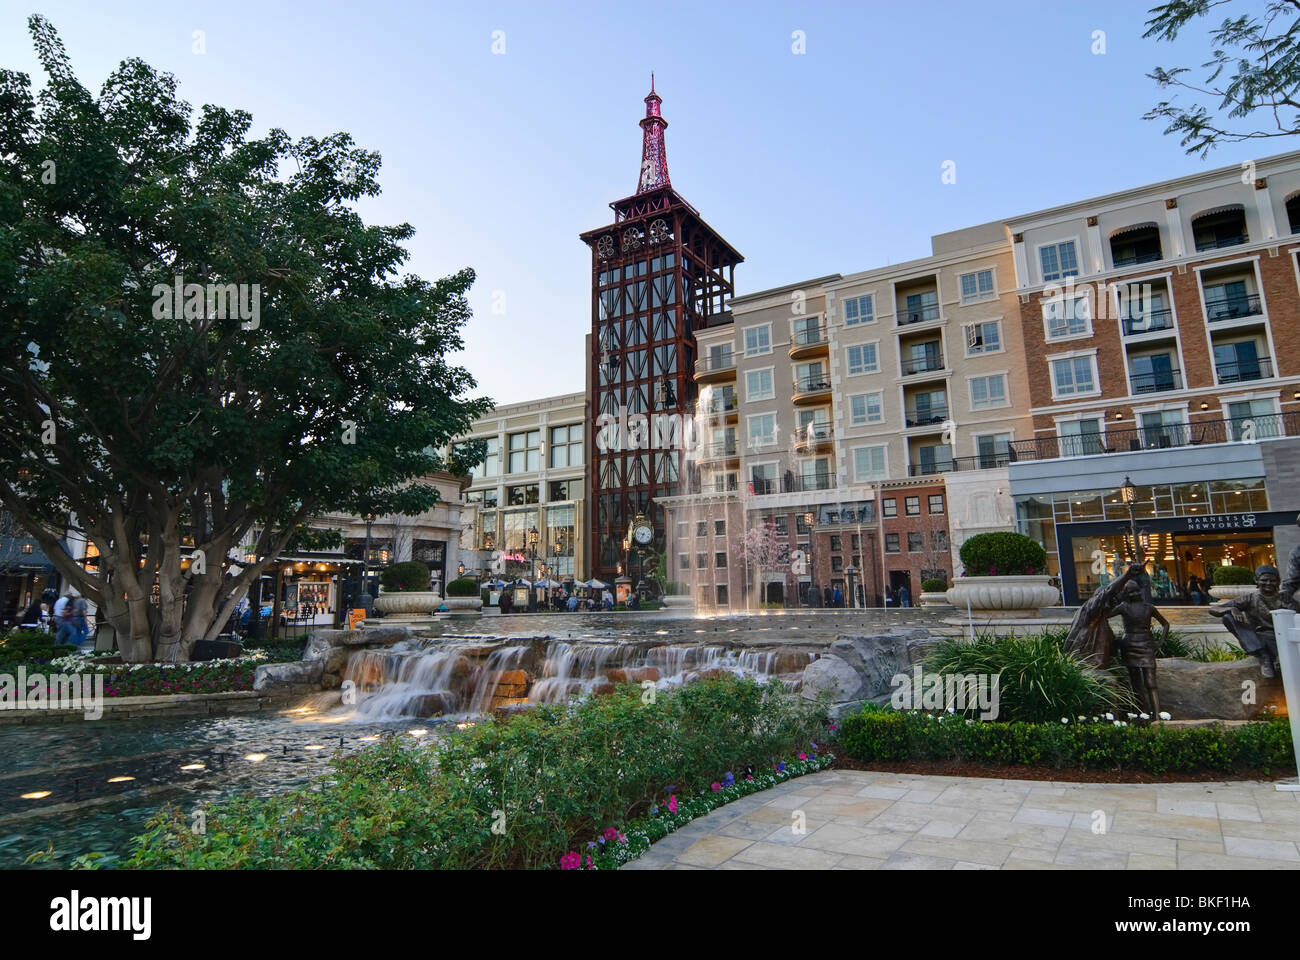 Americana At Brand >> The Americana At Brand Outdoor Shopping Mall In California Stock